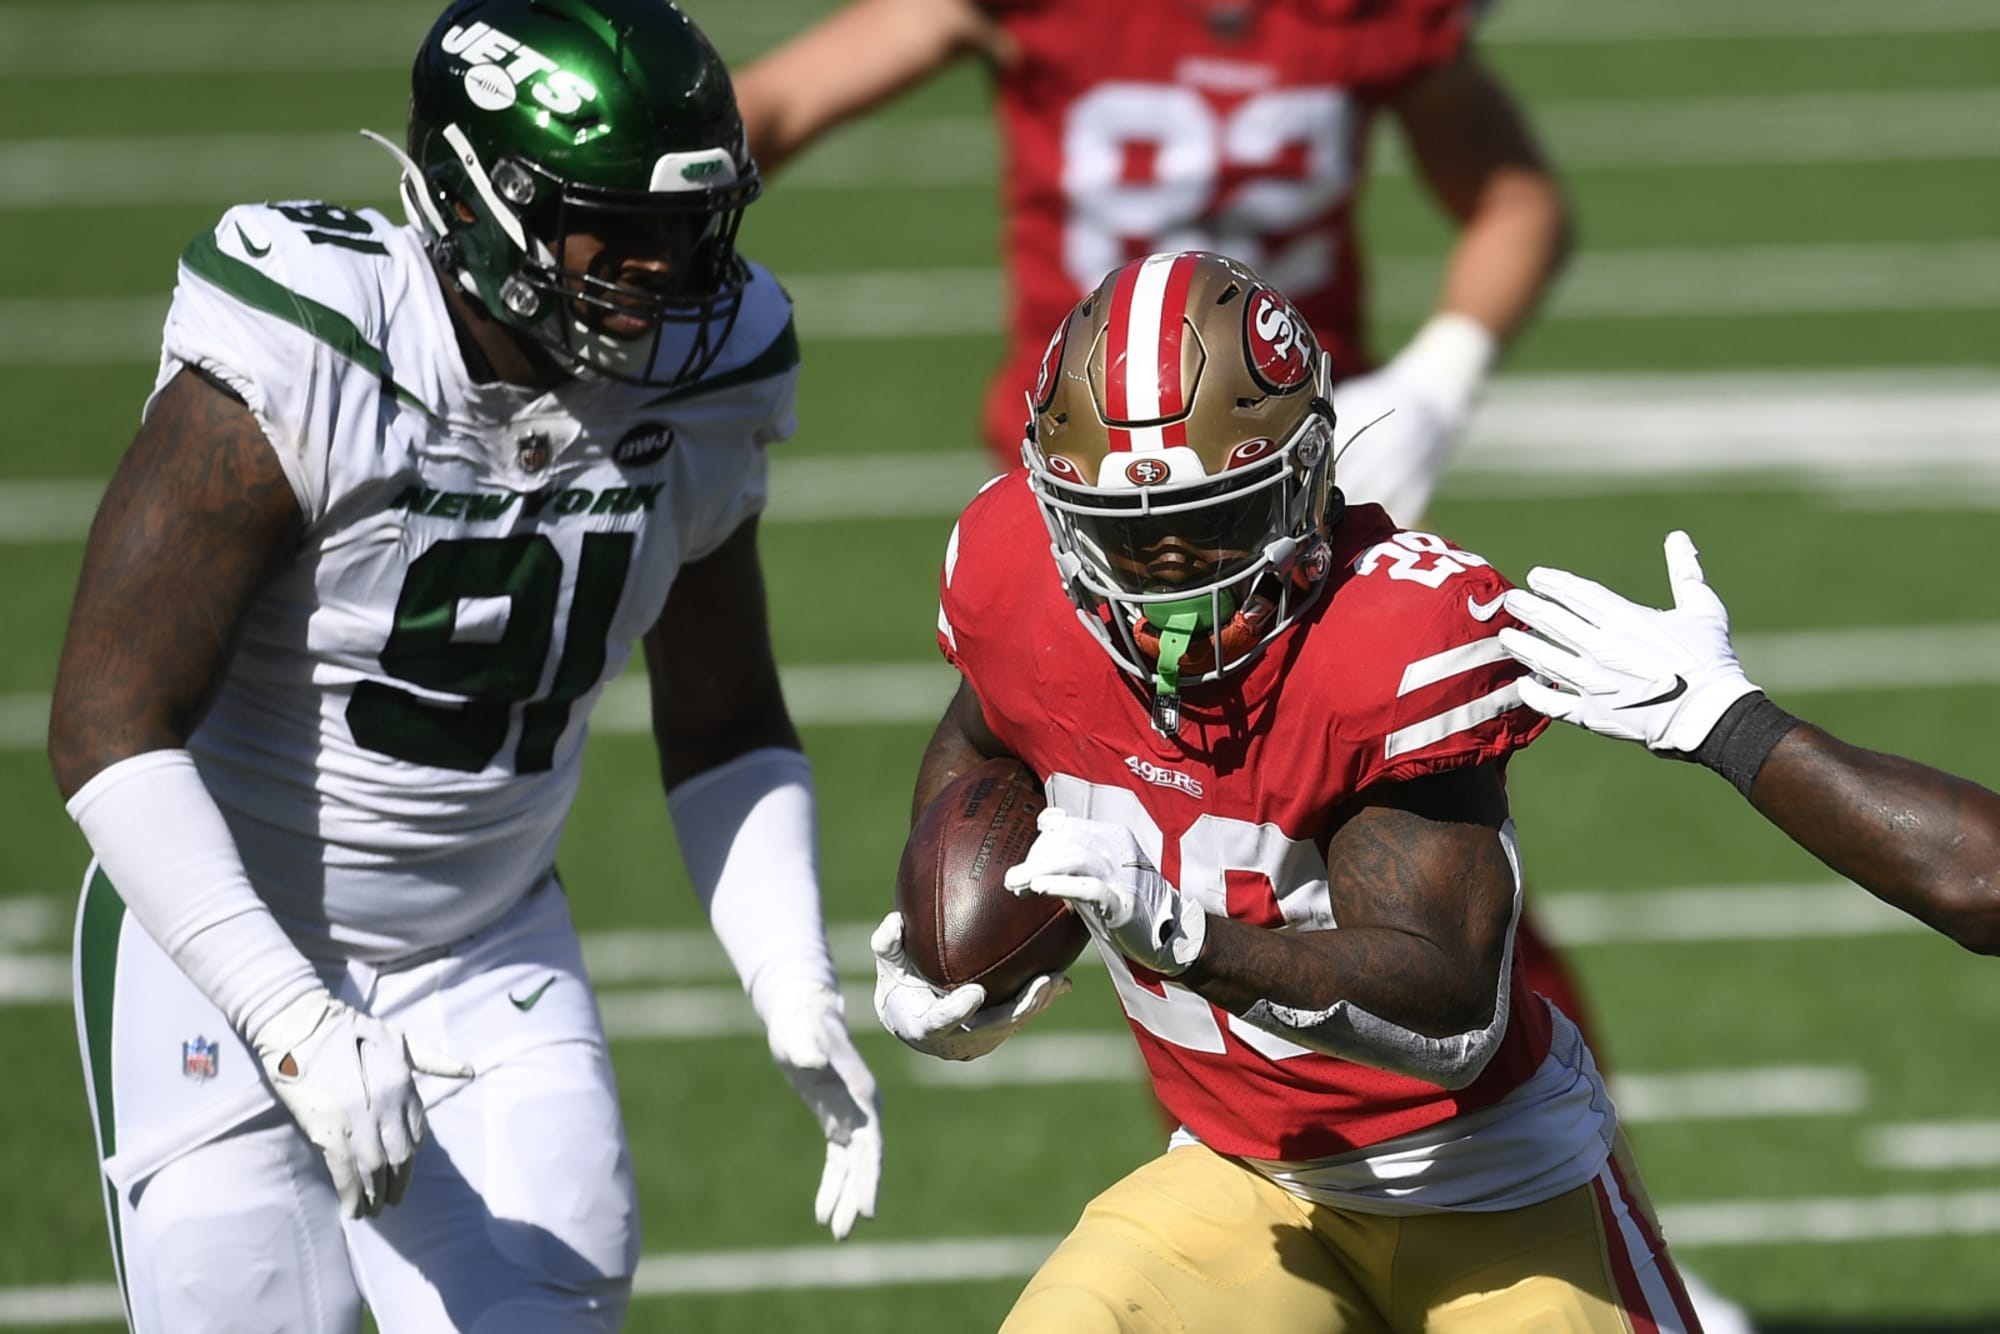 SF 49ers vs NY Giants: Why Jerick McKinnon will go off in Week 3